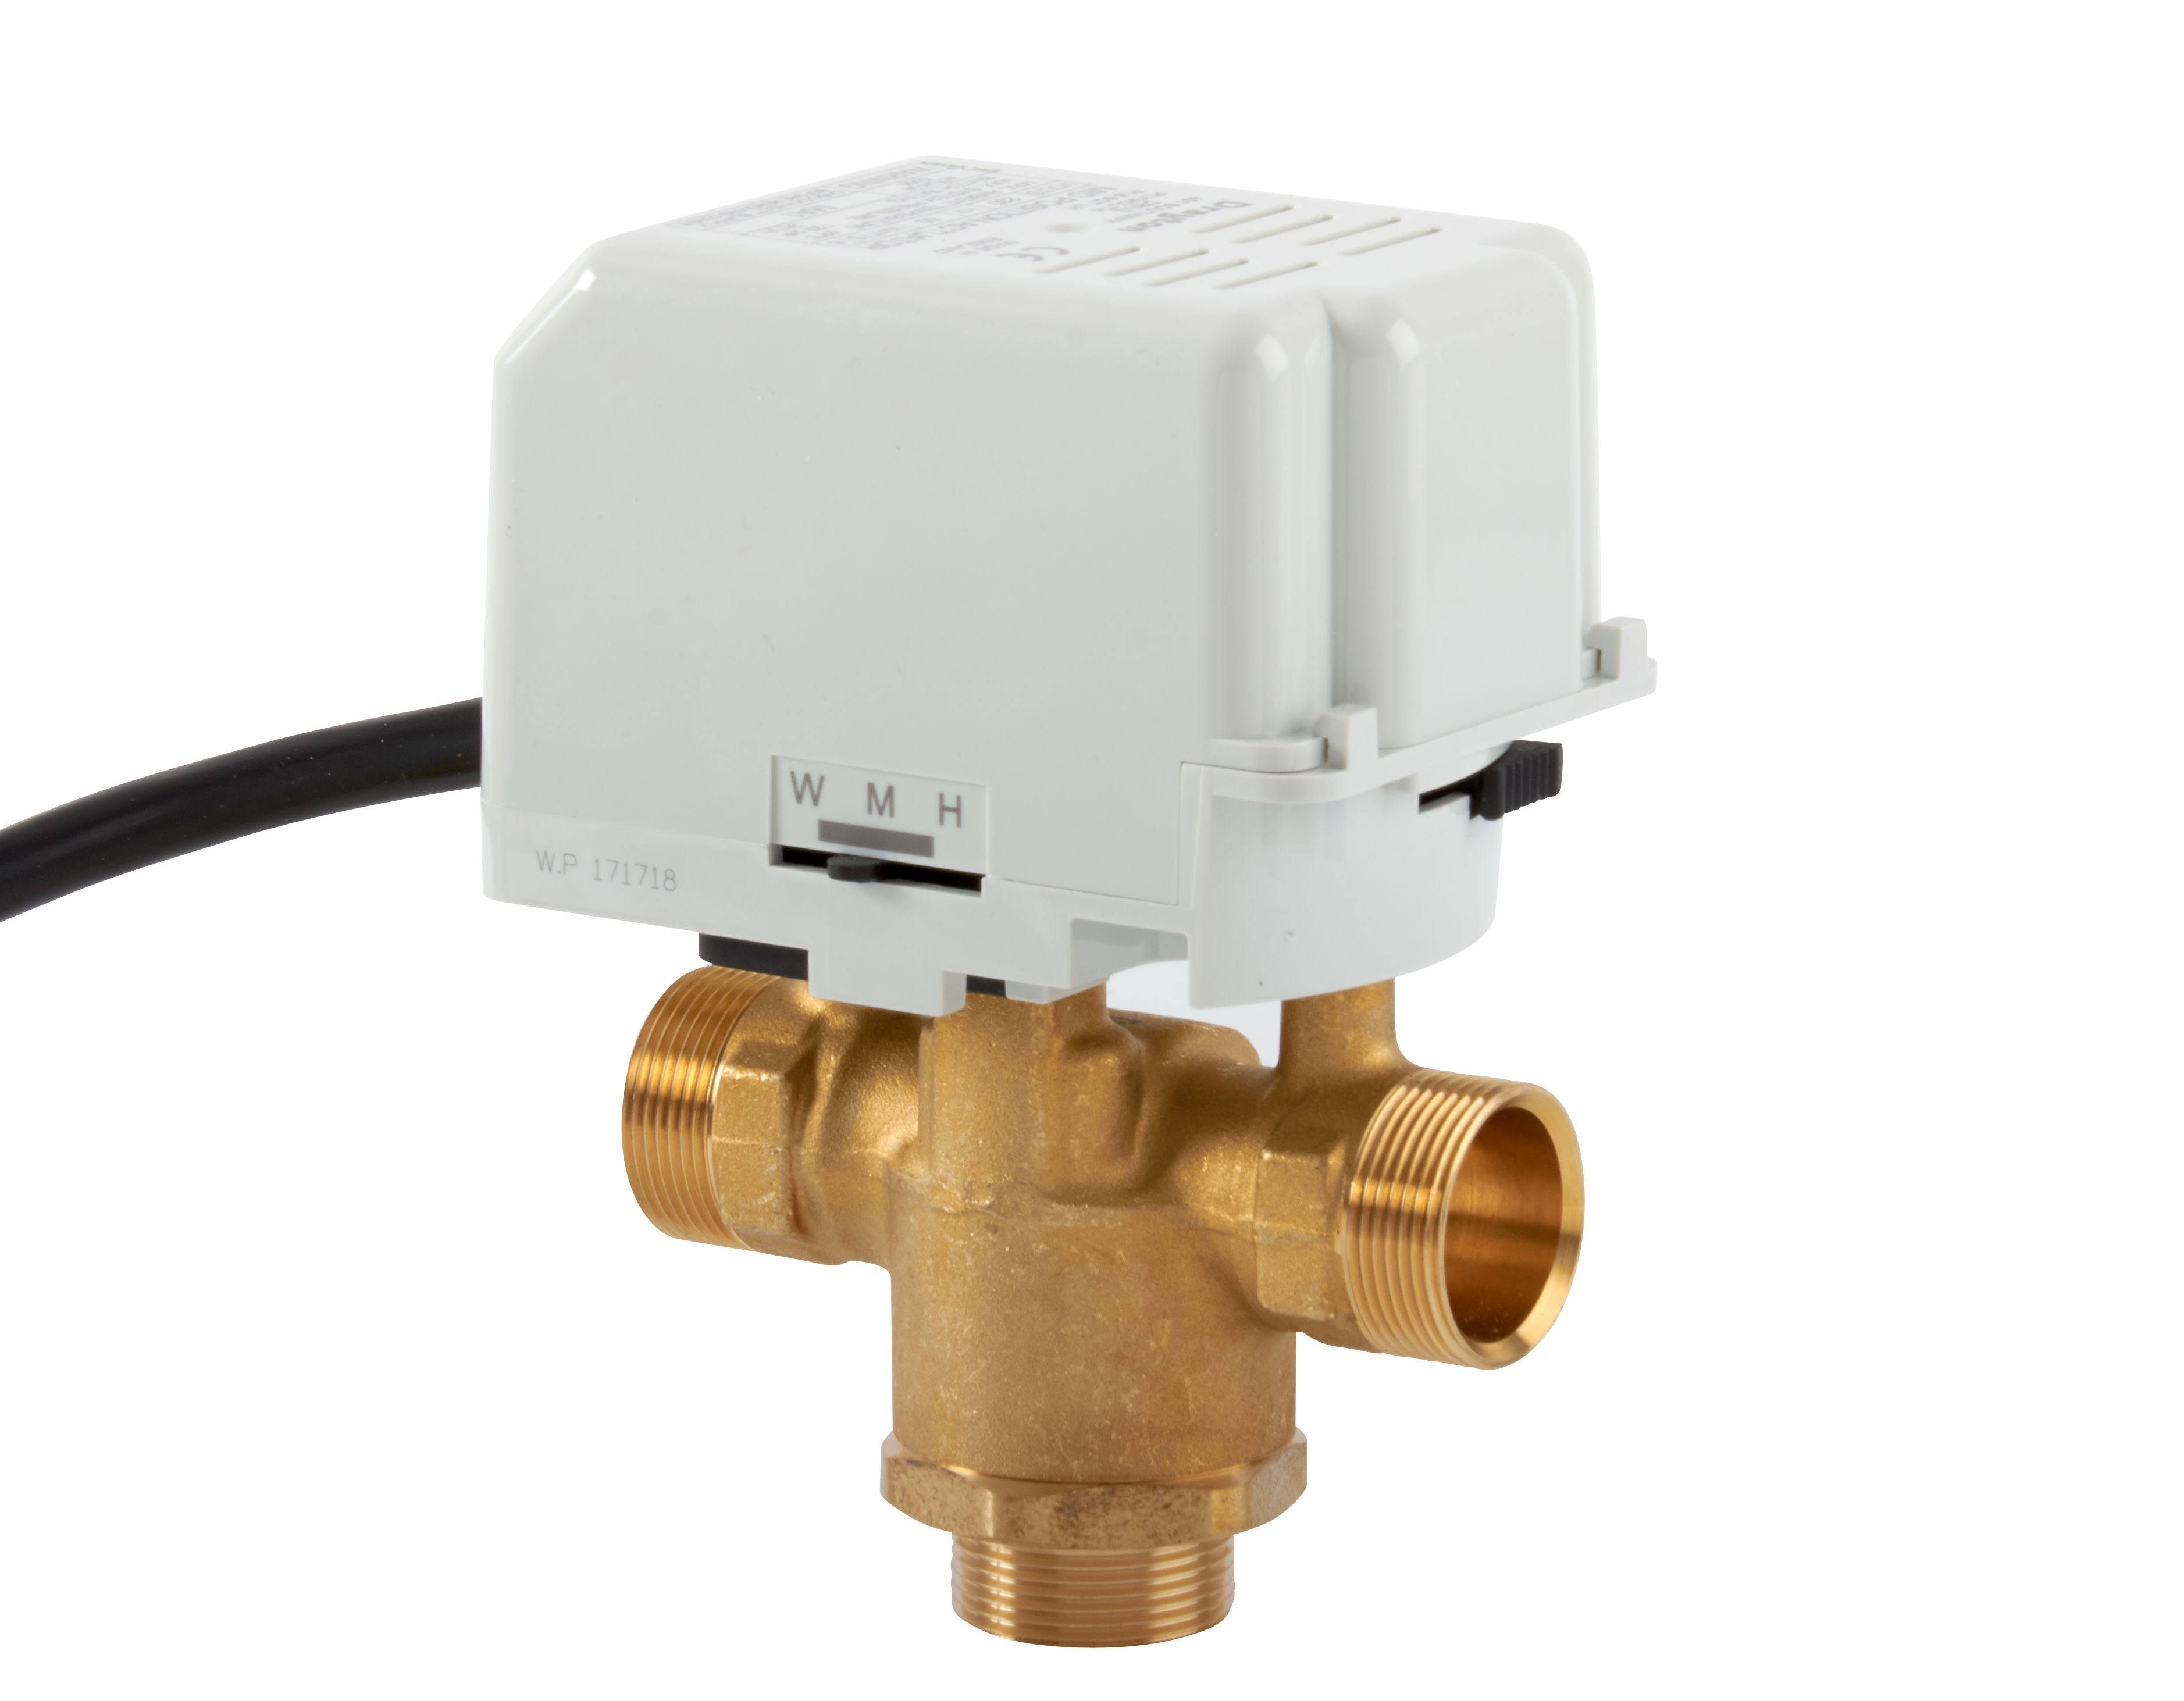 missing product6iddOu S536fmtdjpg6fitdconstrain16widd4006heid400 drayton mid position valve diagram efcaviation com mid position valve wiring diagram at gsmx.co